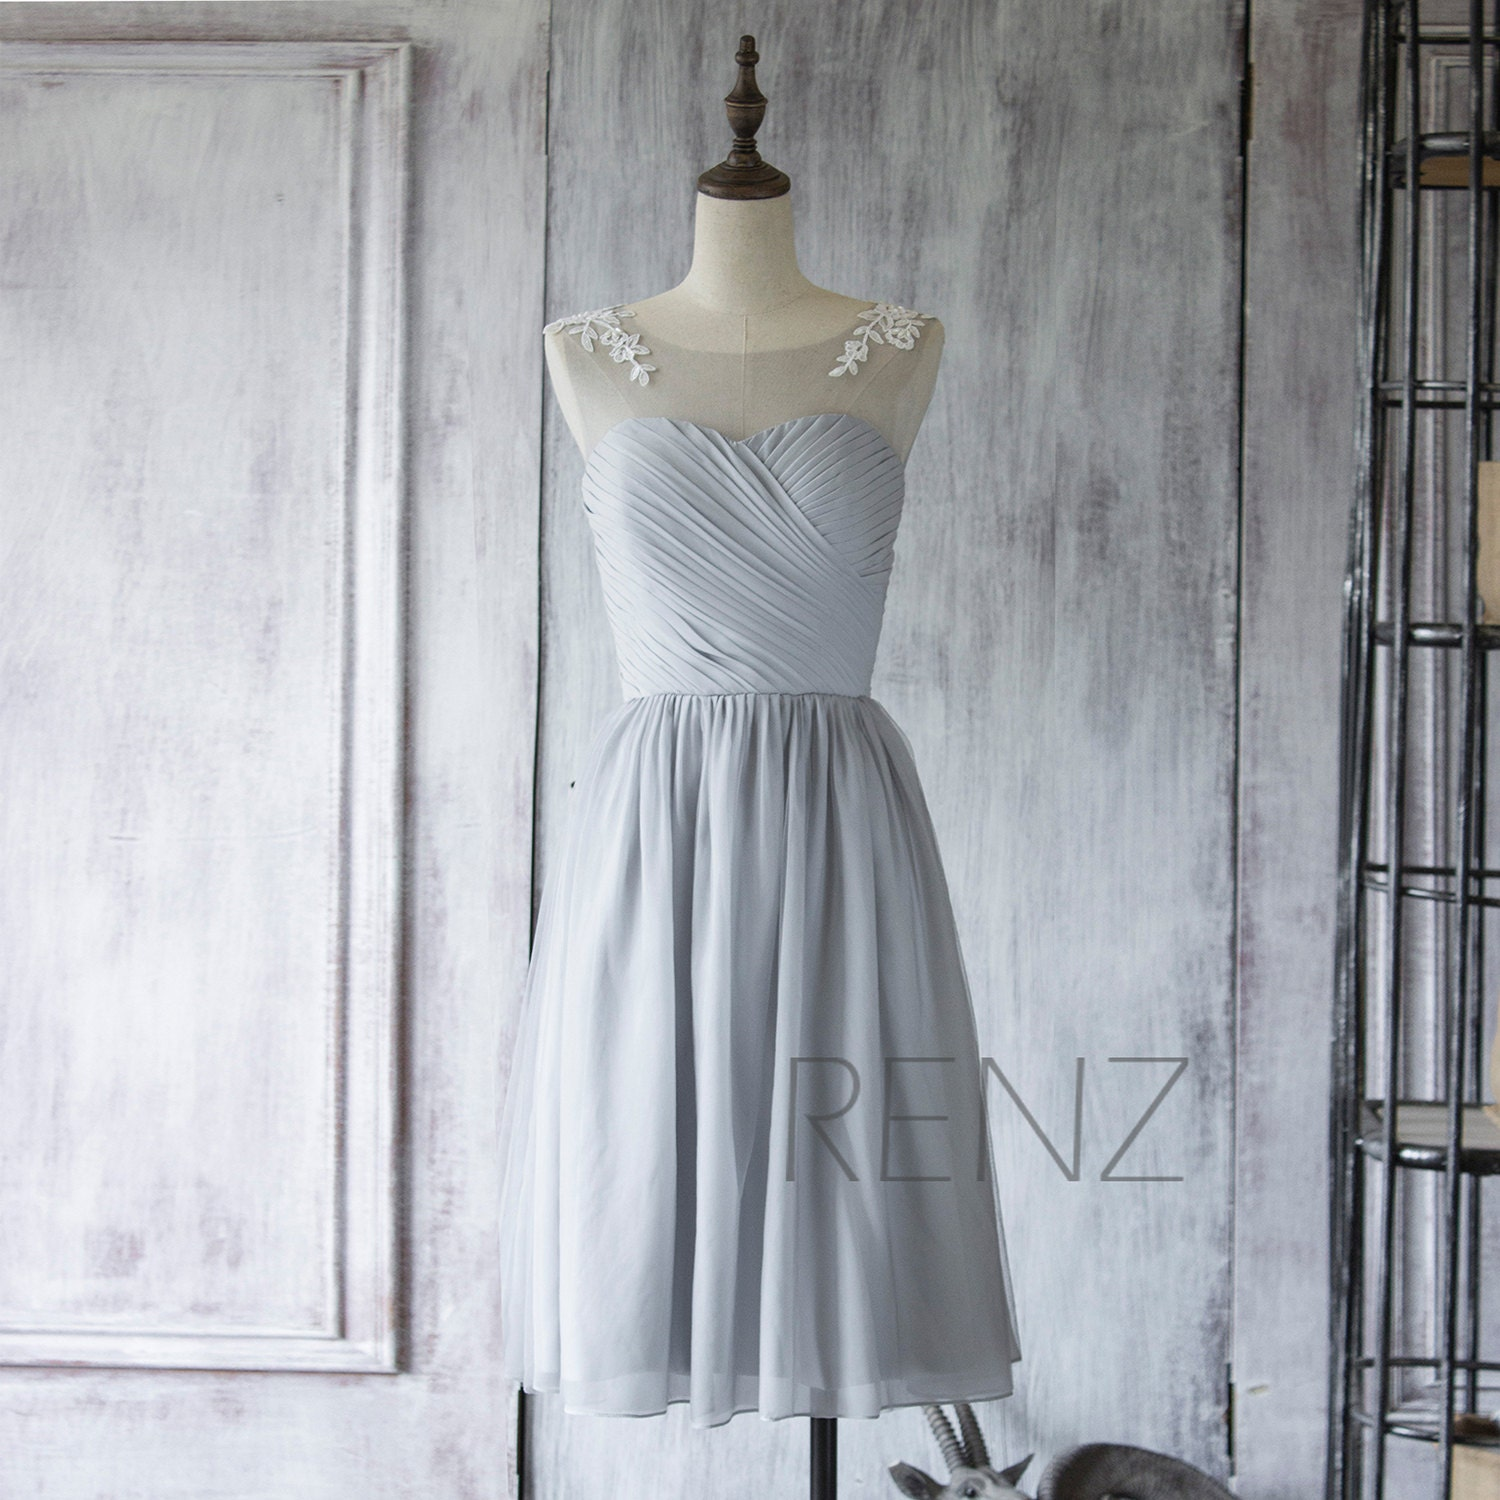 Bridesmaid Dress Medium Gray Chiffon DressWedding DressLace